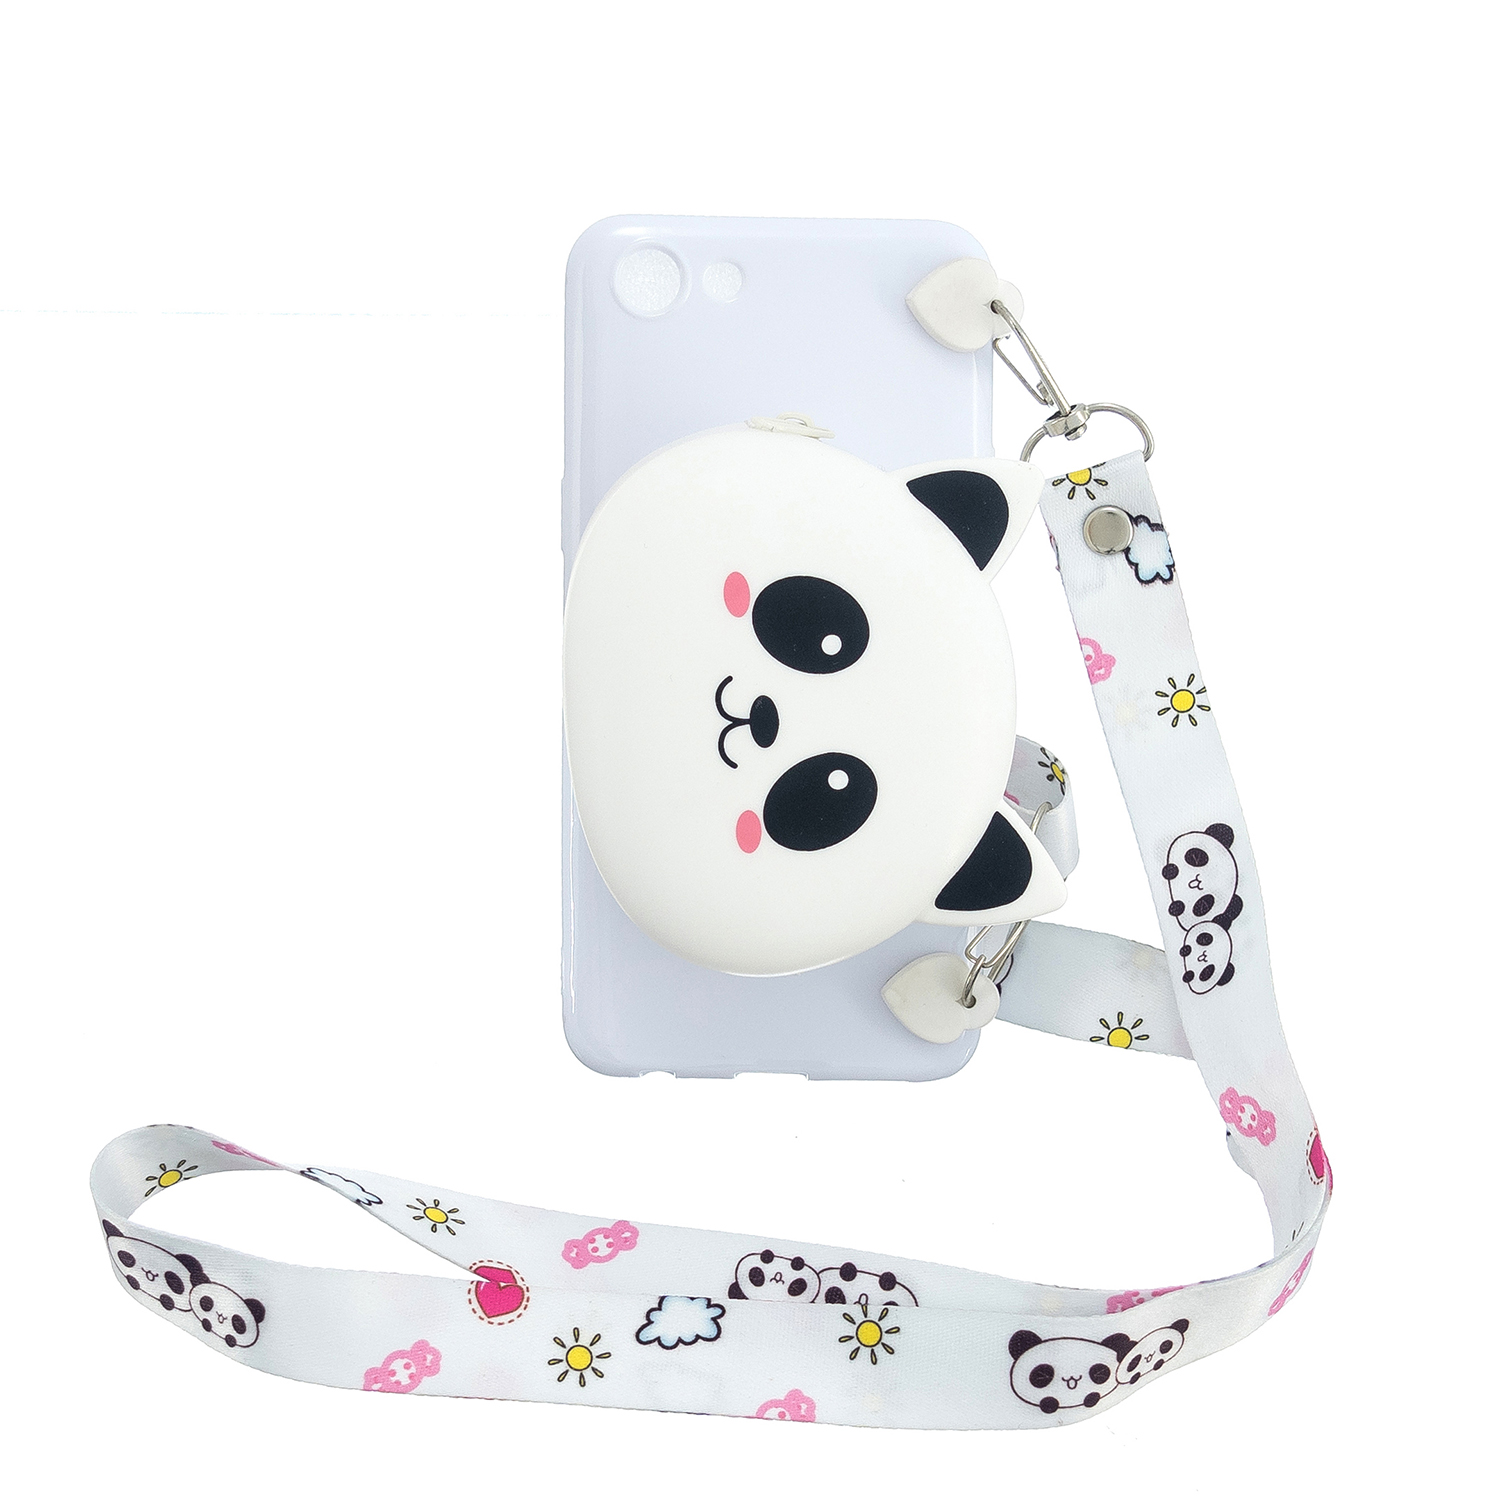 For OPPO A83/A9 2020 Cellphone Case Mobile Phone TPU Shell Shockproof Cover with Cartoon Cat Pig Panda Coin Purse Lovely Shoulder Starp  White